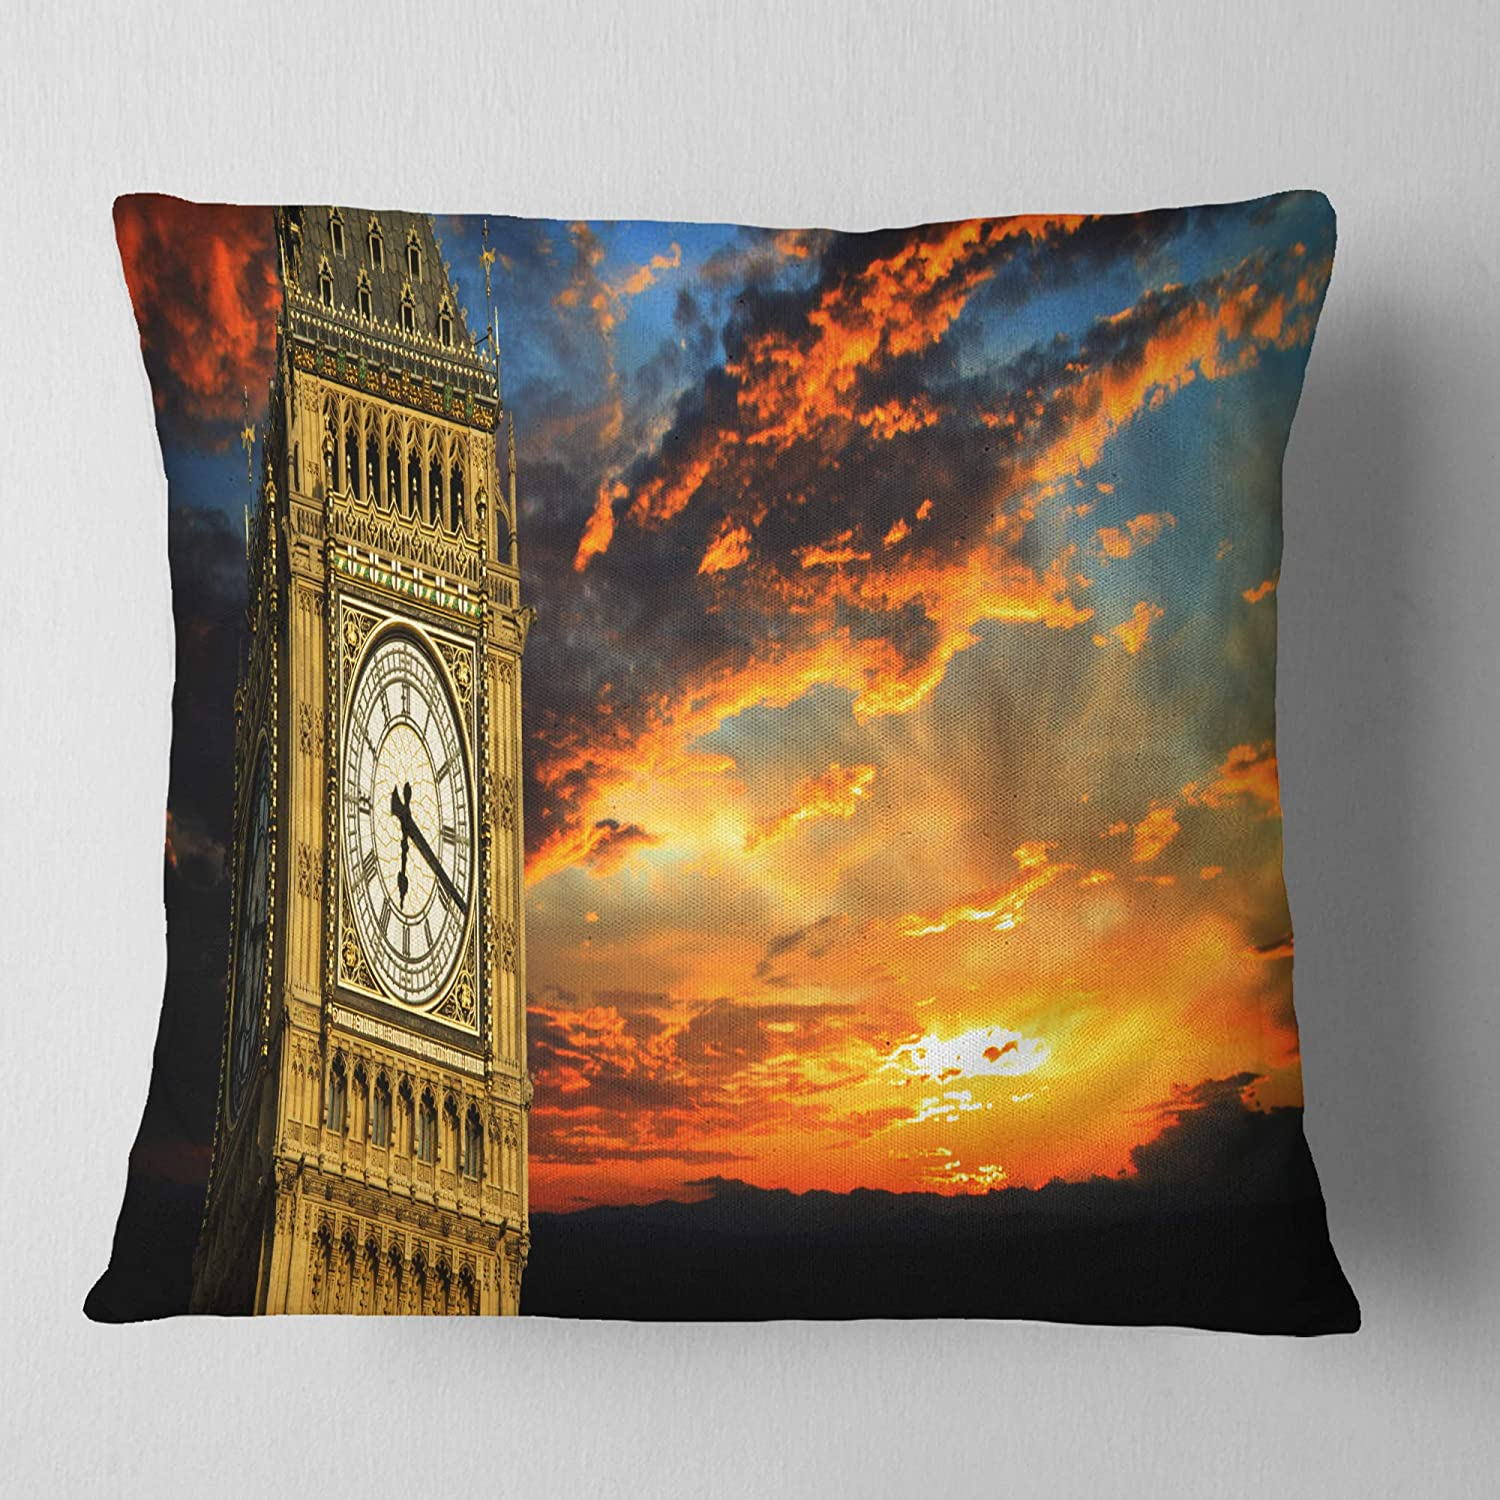 Designart CU10869-26-26 Big Ben UK London at Sunset Panorama Landscape Printed Cushion Cover for Living Room x 26 in in Sofa Throw Pillow 26 in